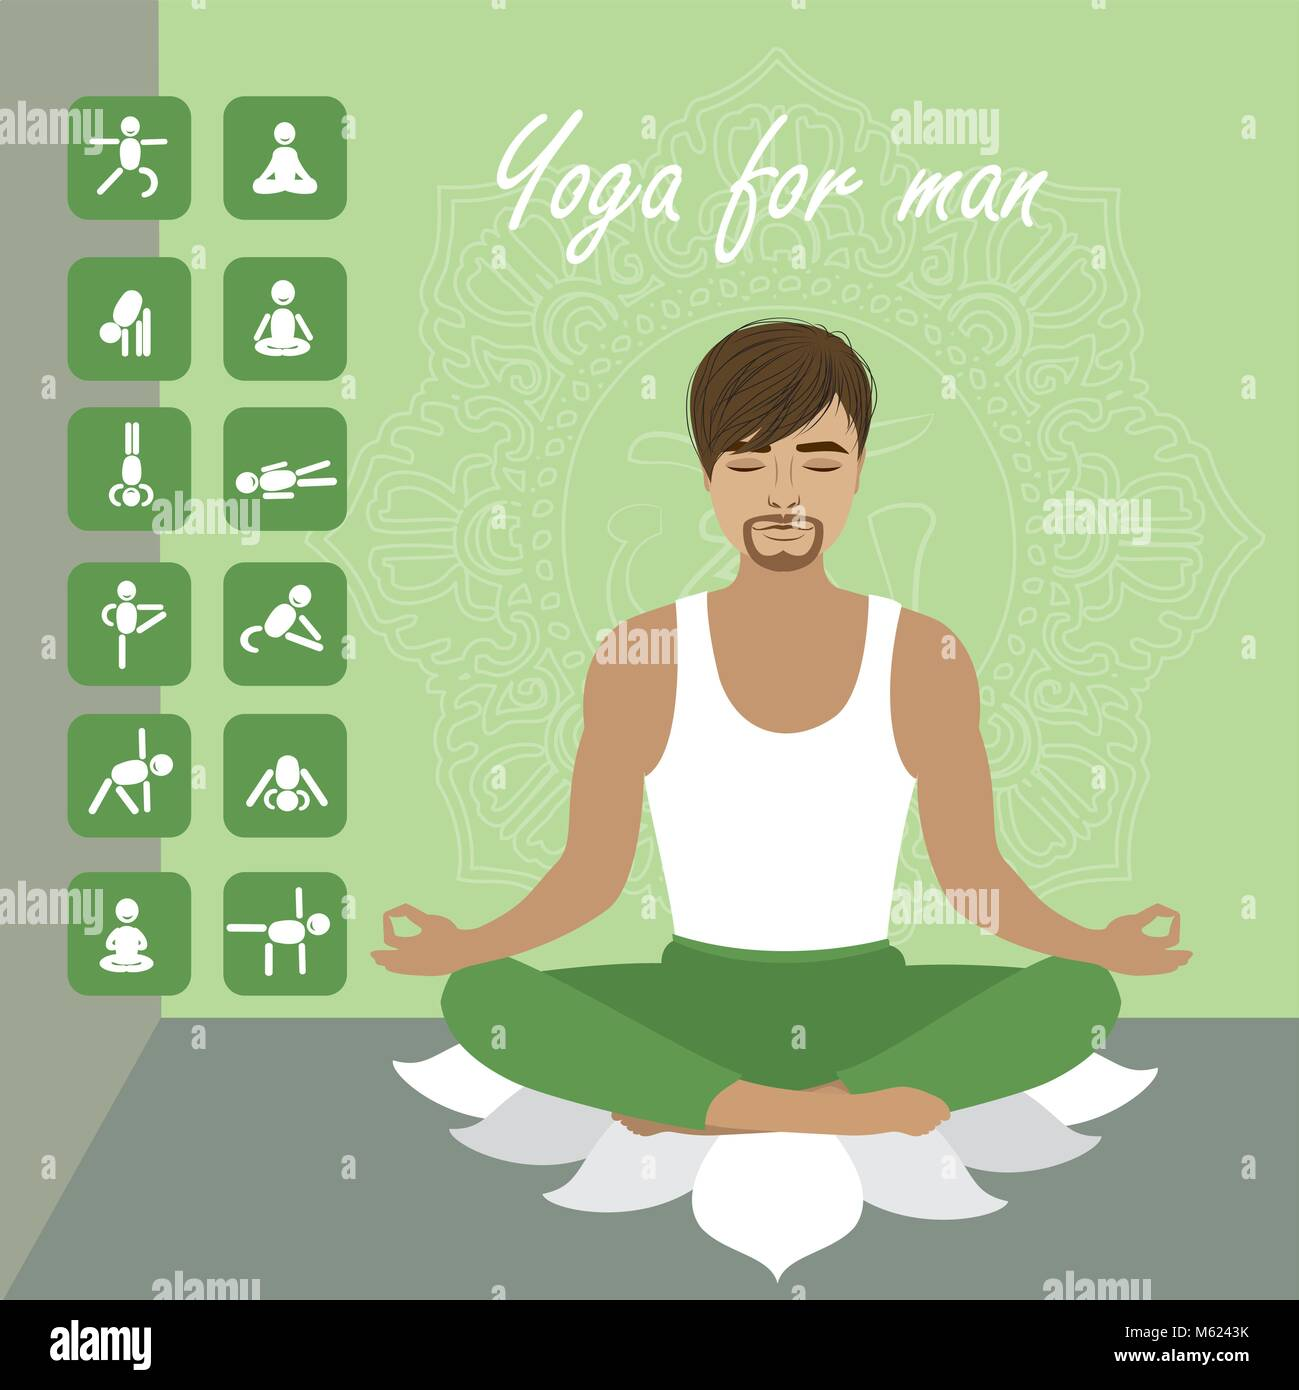 Man In The Lotus Pose And Men Icons In Different Yoga Positions Stock Vector Image Art Alamy